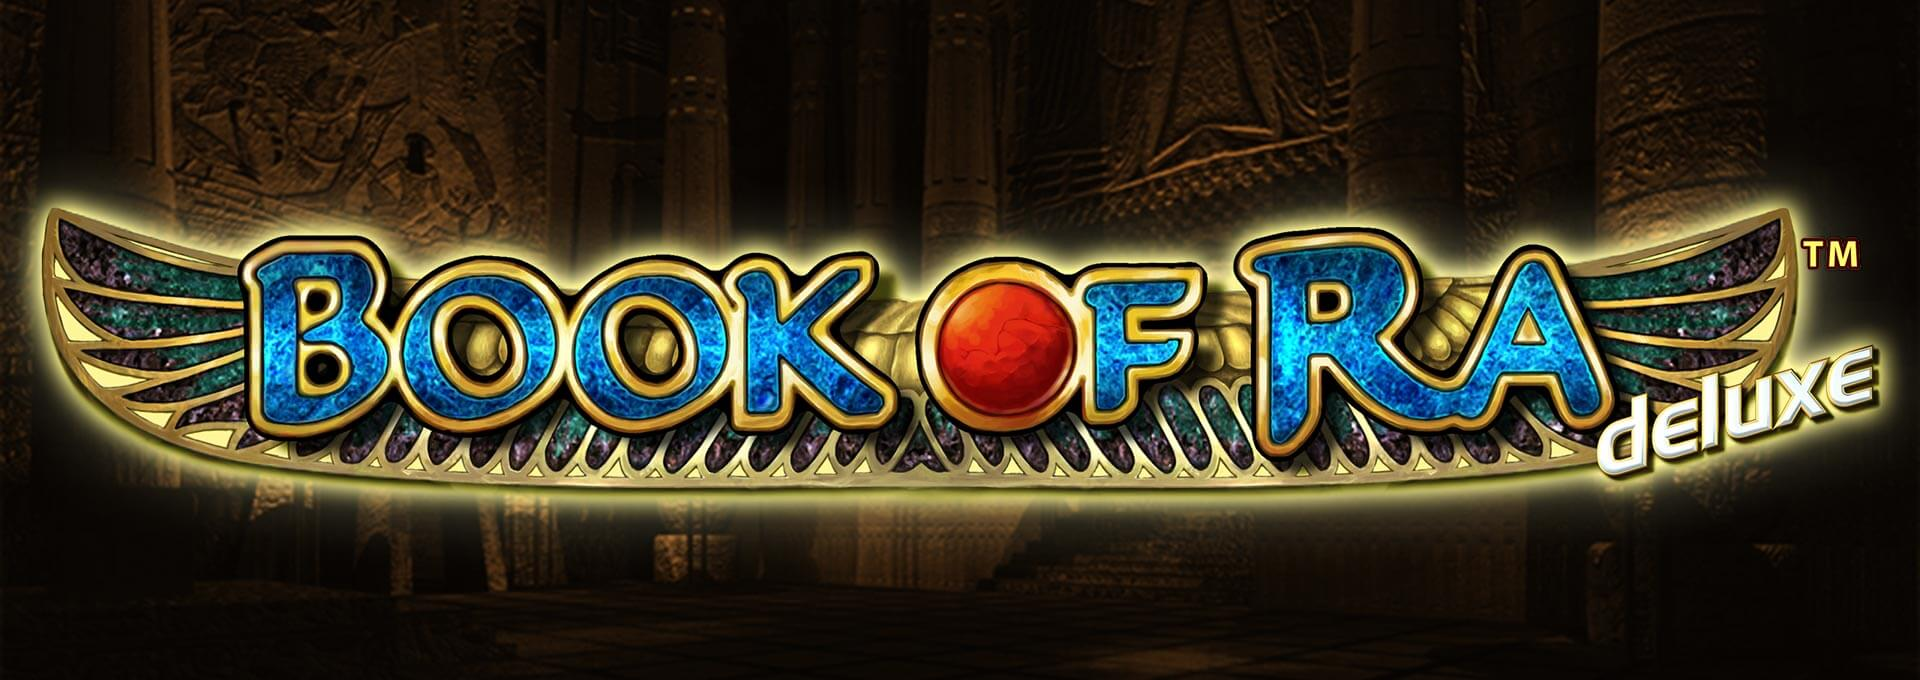 online casino ratgeber book of ra deluxe free download